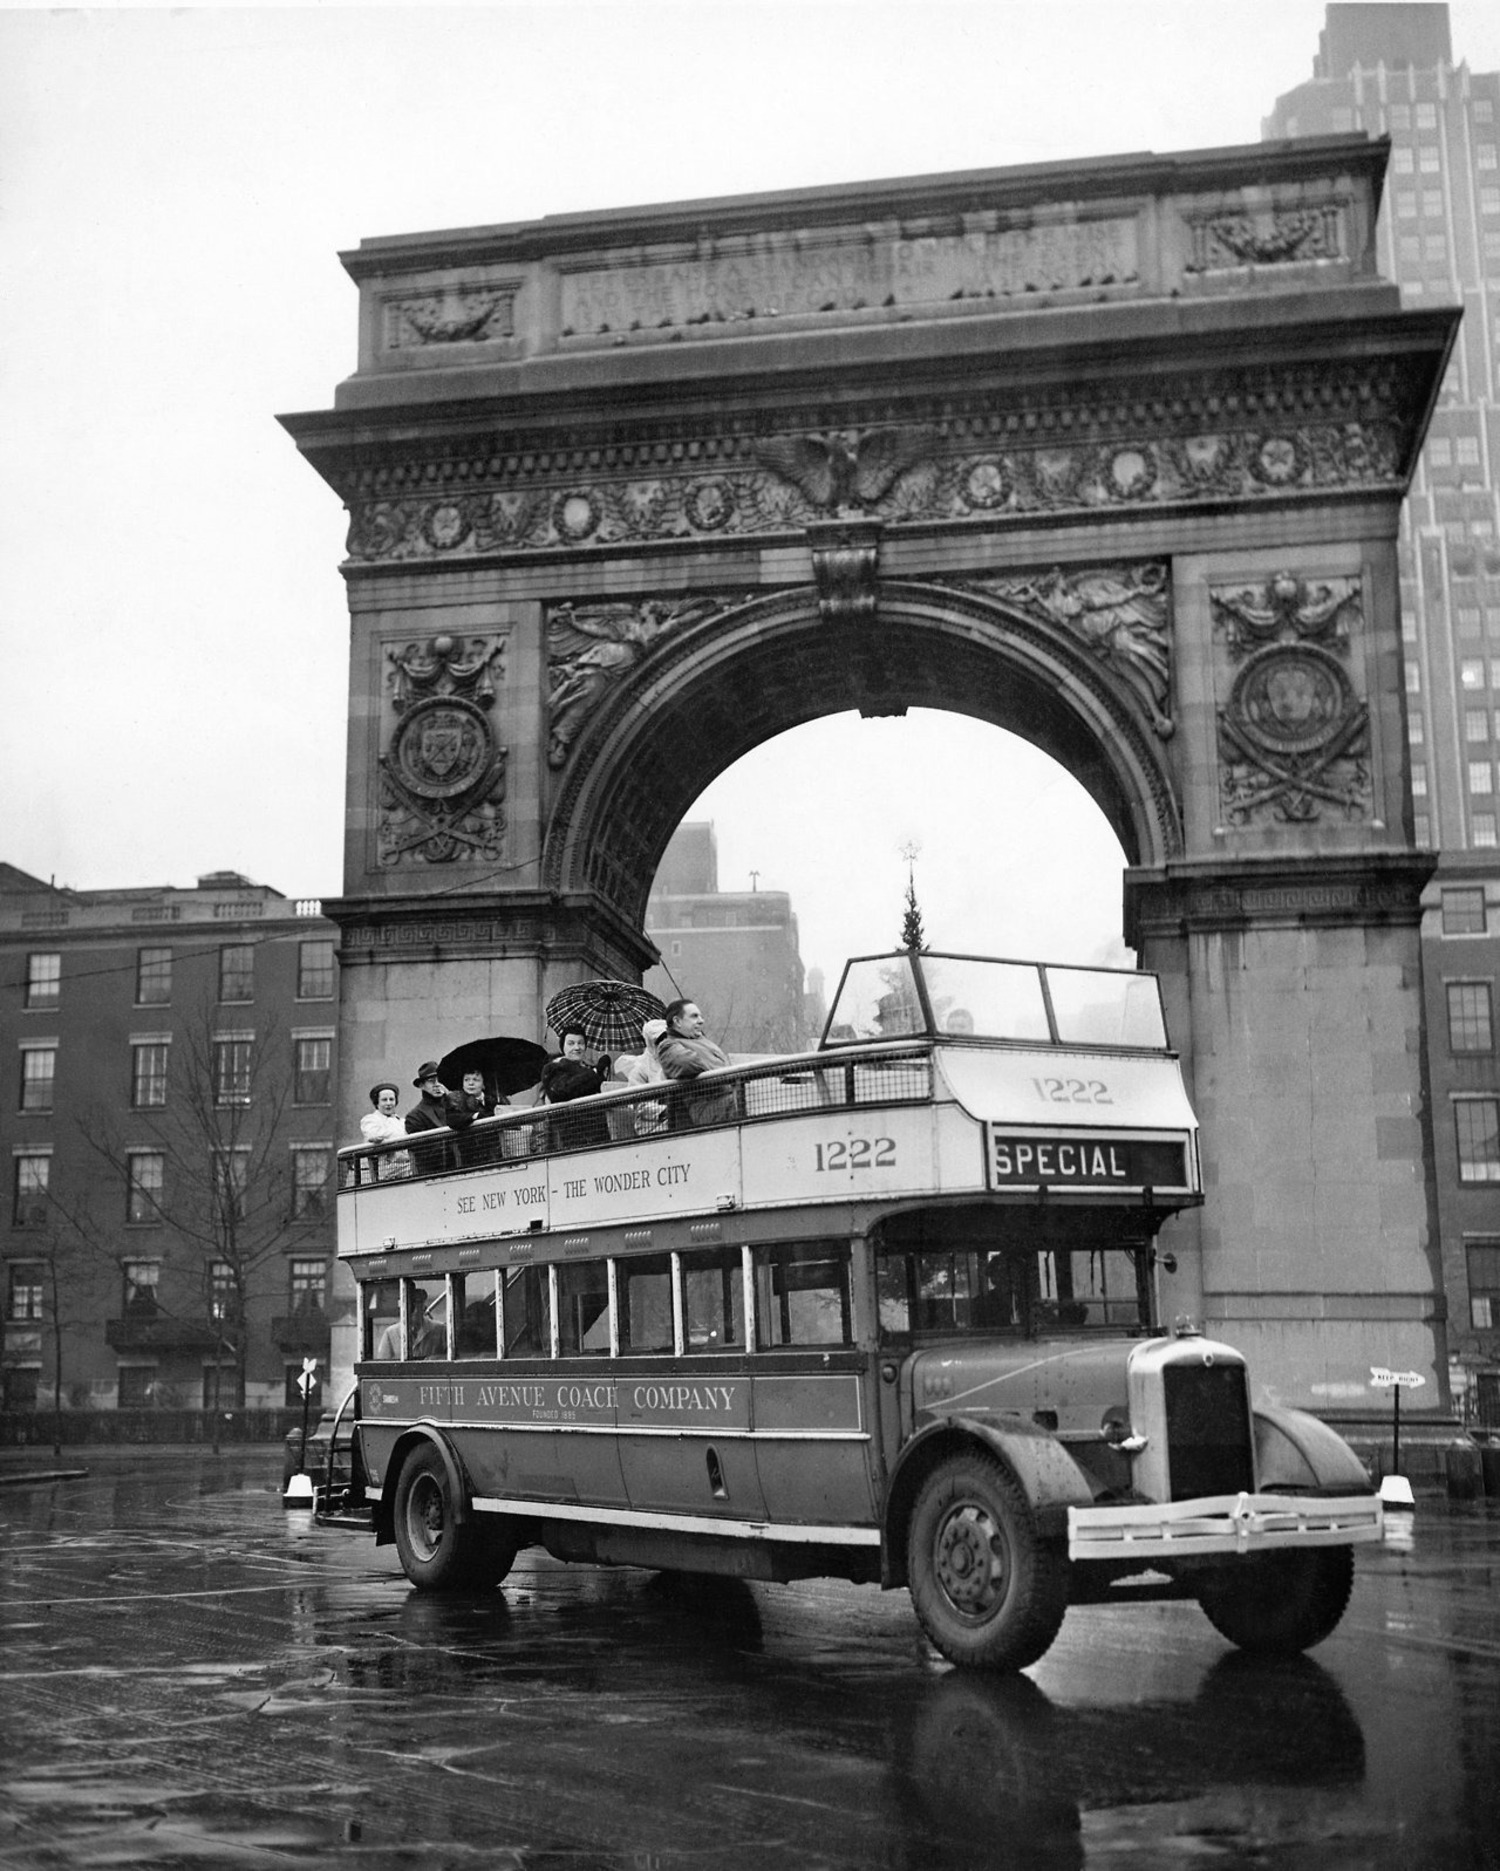 "Dec. 29, 1946: ""It's a lark!"" exclaimed a passenger on one of the last trips of one of New York City's last five double-decker, open-top buses. ""It's a shame they're taking them away. During the summer months they'd be wonderful,"" the woman added. ""The Fifth Avenue Coach Company had ordered the use of the old open double-deckers discontinued as of 1 p.m.,"" reported The Times, which also noted that the buses had been running there since 1907 and that ""some of the old machines would be sent to Argentina and Cuba,"" and others would be scrapped for parts."